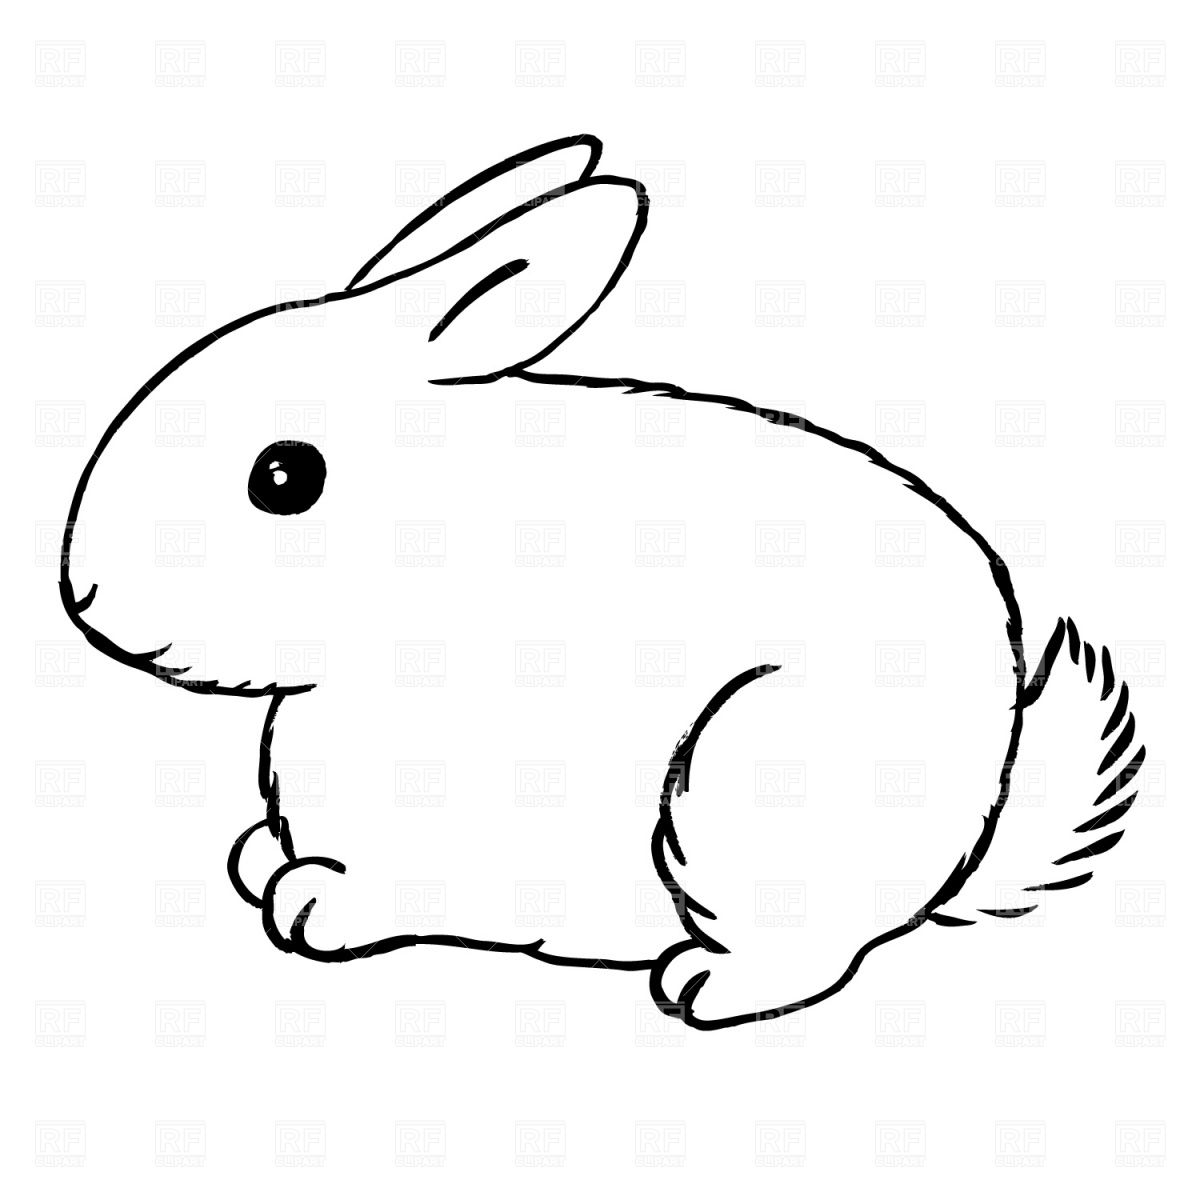 Rabbit clipart black and white jpg free library drawings of rabbits and bunnies | Use these free images for ... jpg free library